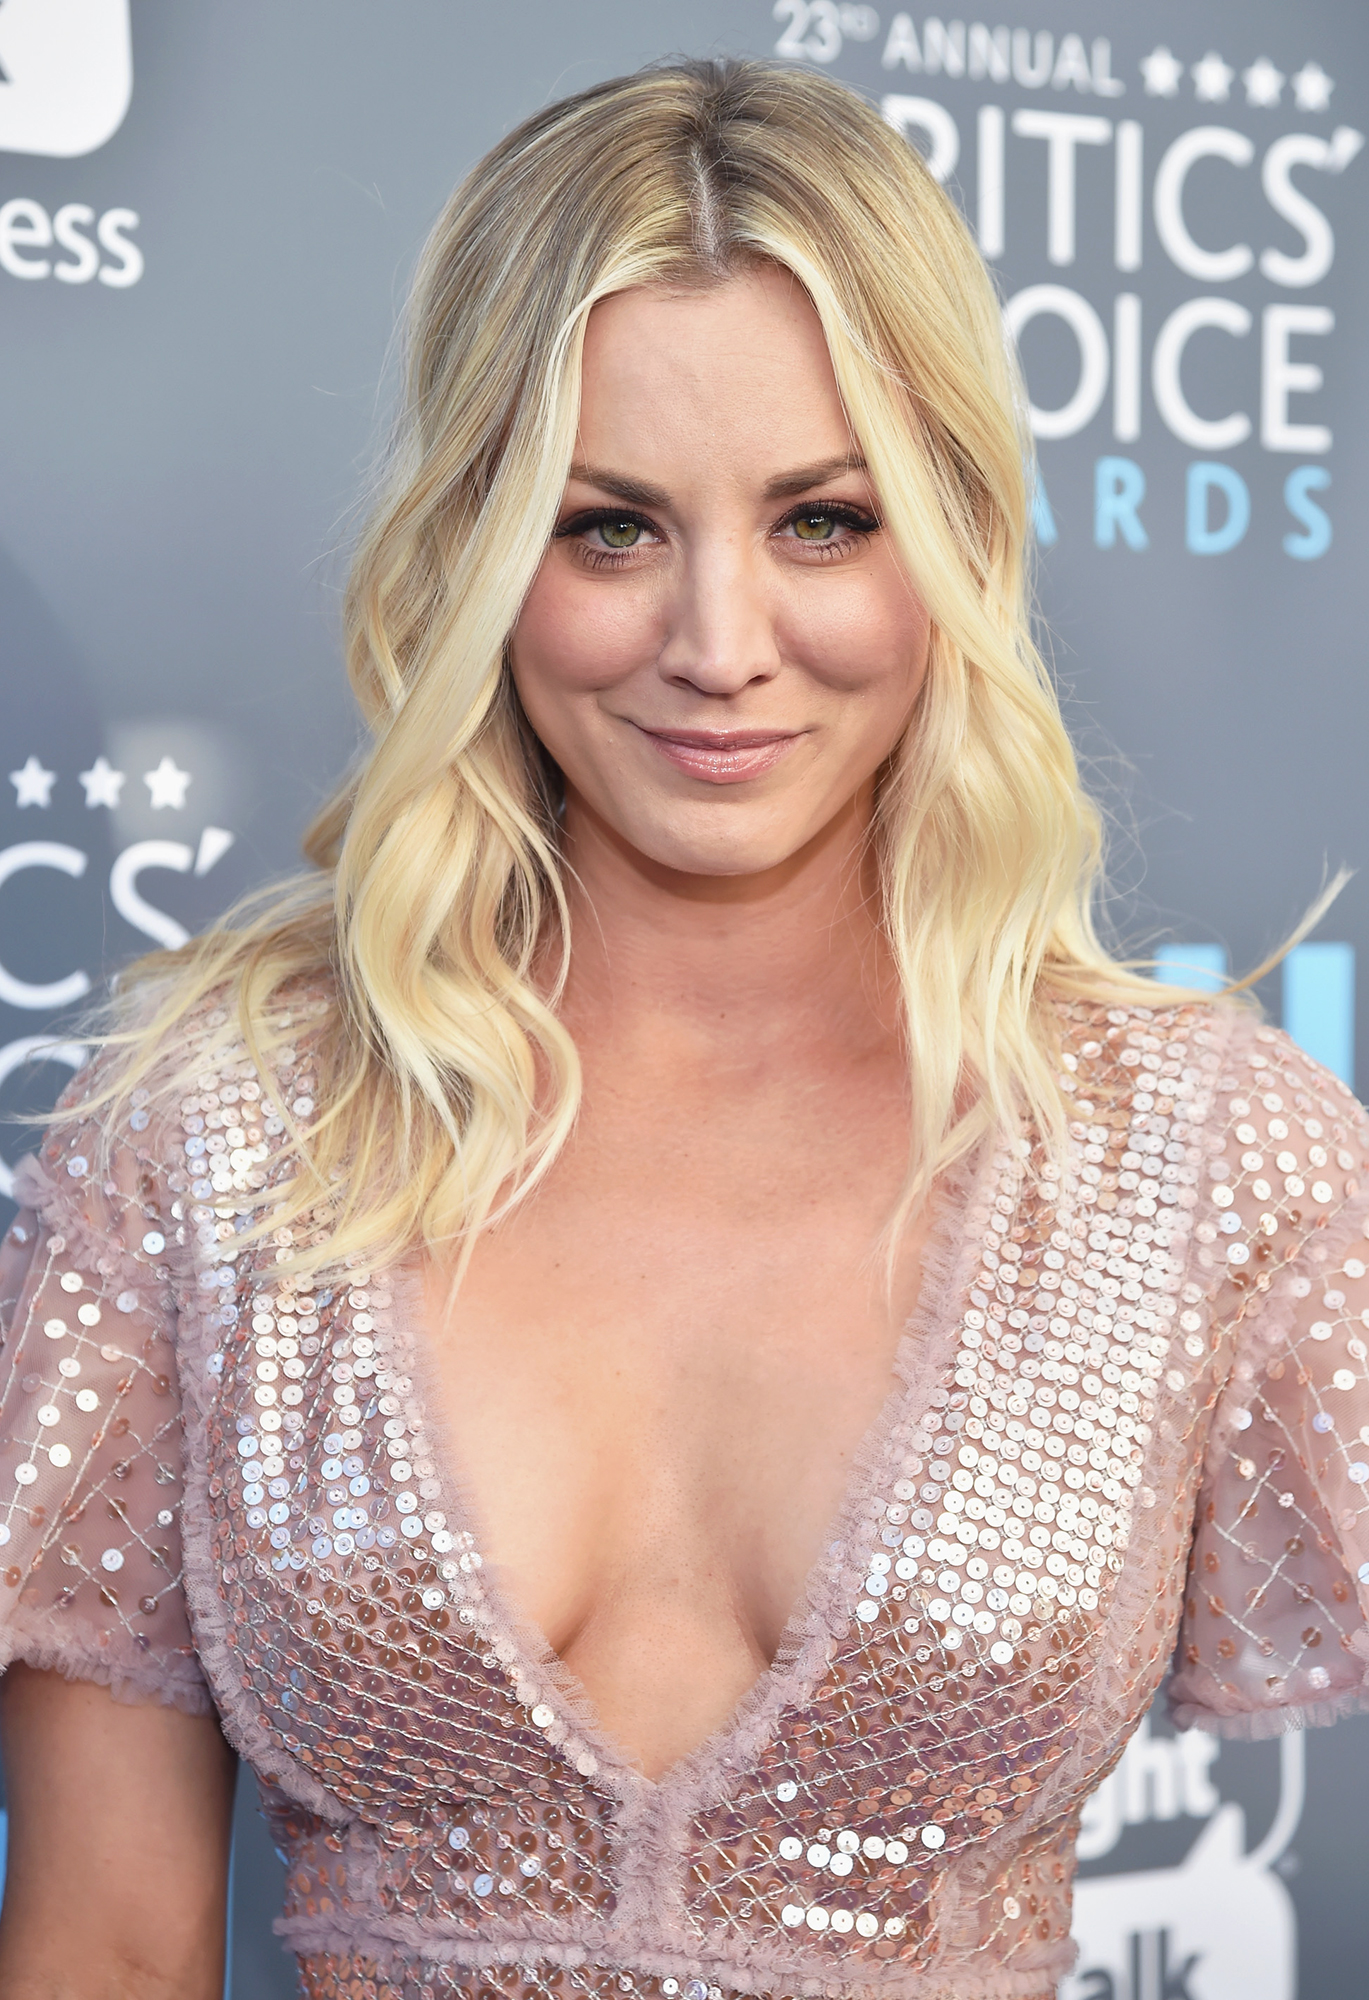 Images Kaley Cuoco nudes (48 foto and video), Ass, Cleavage, Selfie, butt 2015